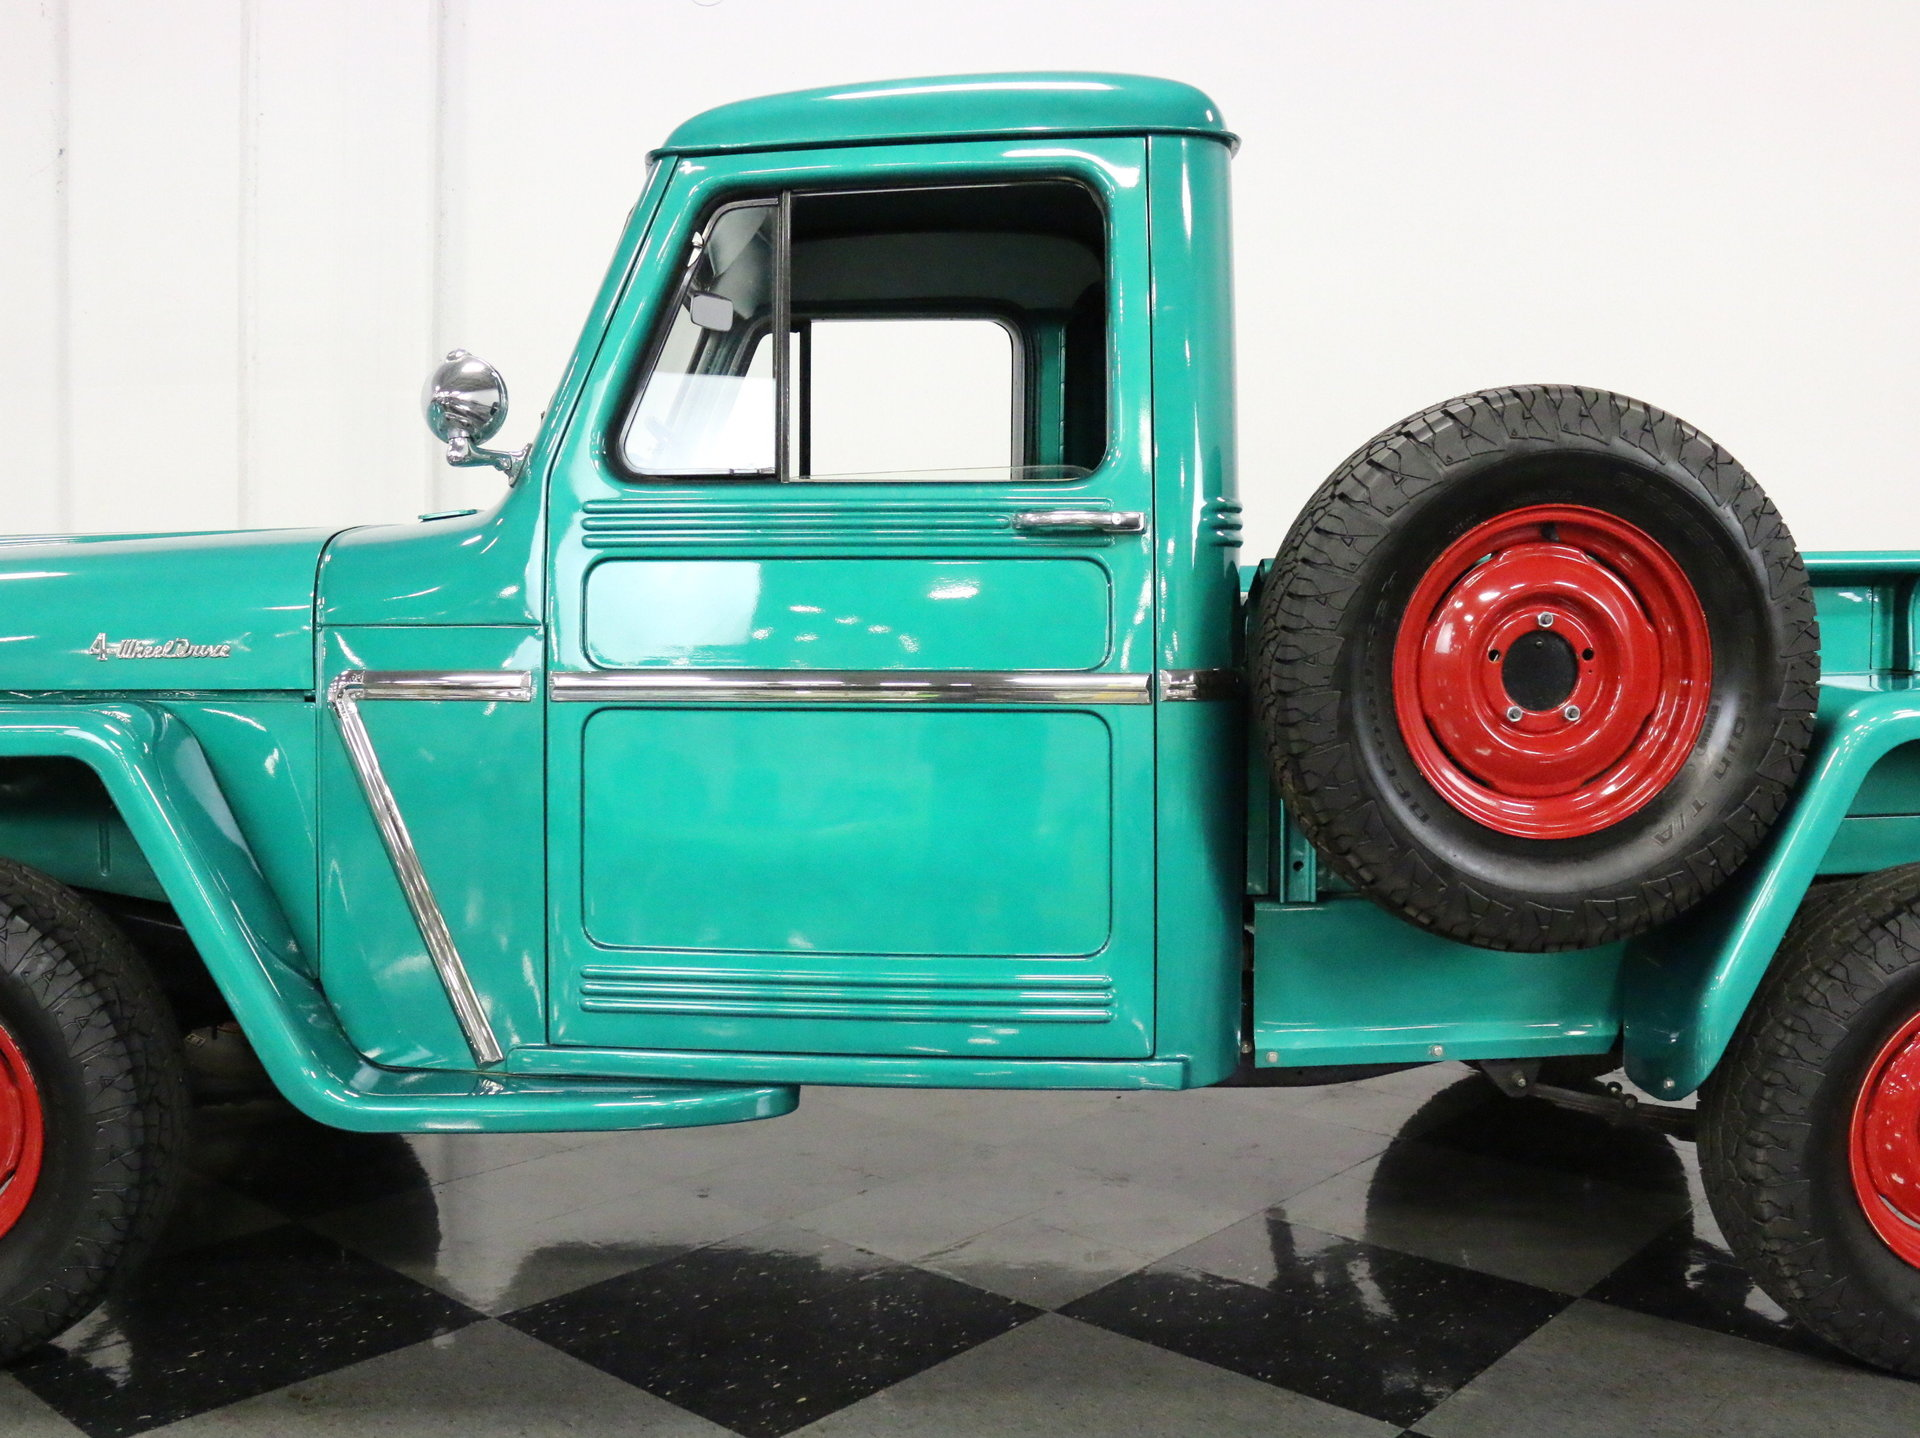 1960 Willys Pickup Streetside Classics The Nations Trusted 1941 Jeep Trucks Show More Photos